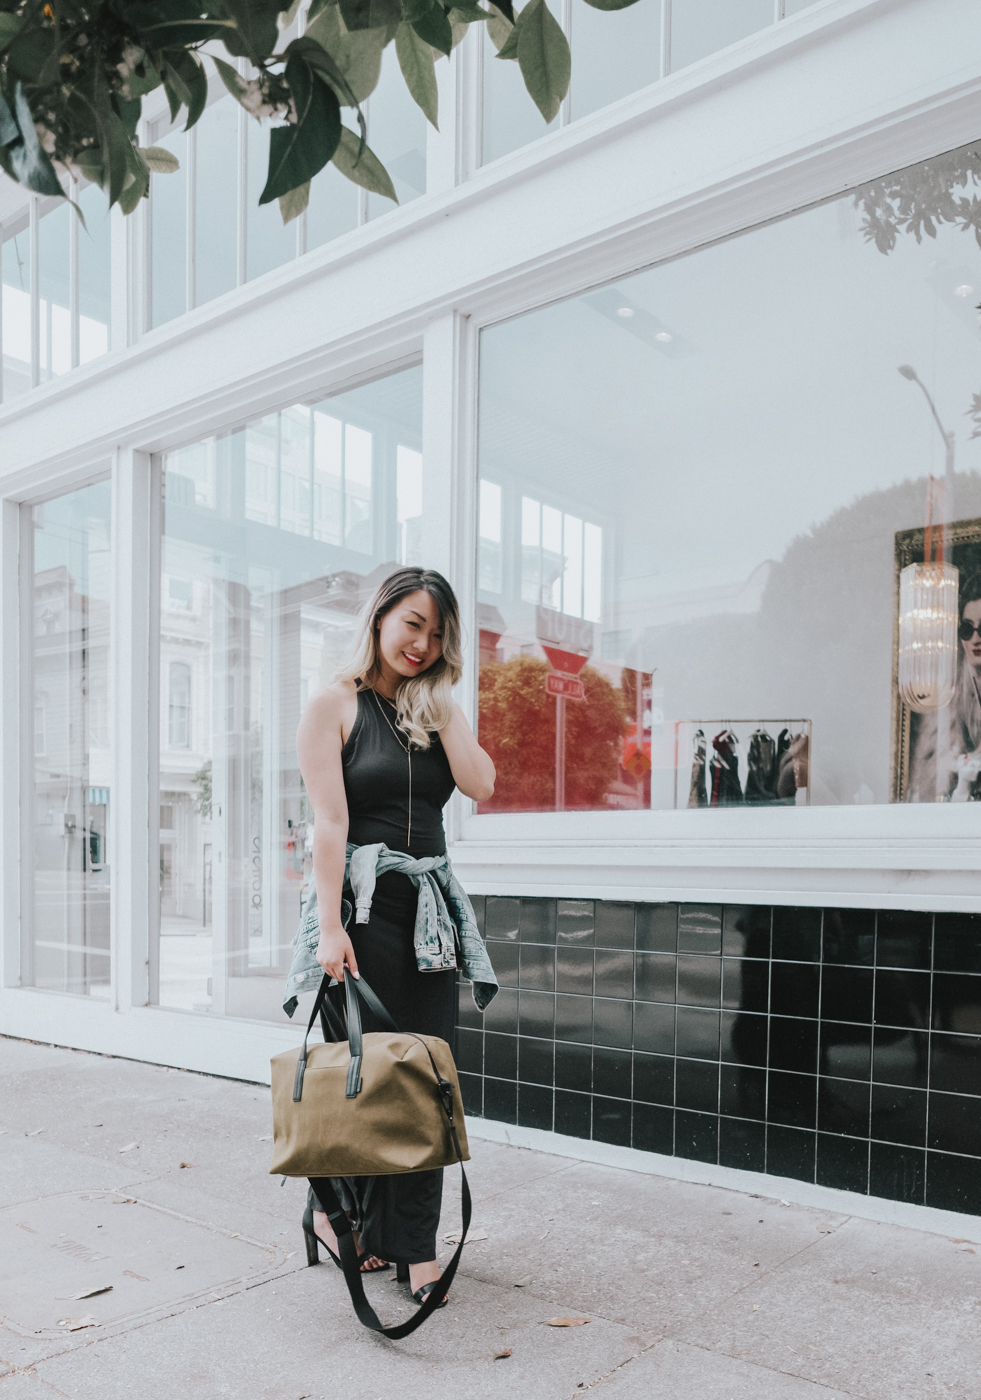 Away Luggage - The Everywhere Bag | The Chic Diary